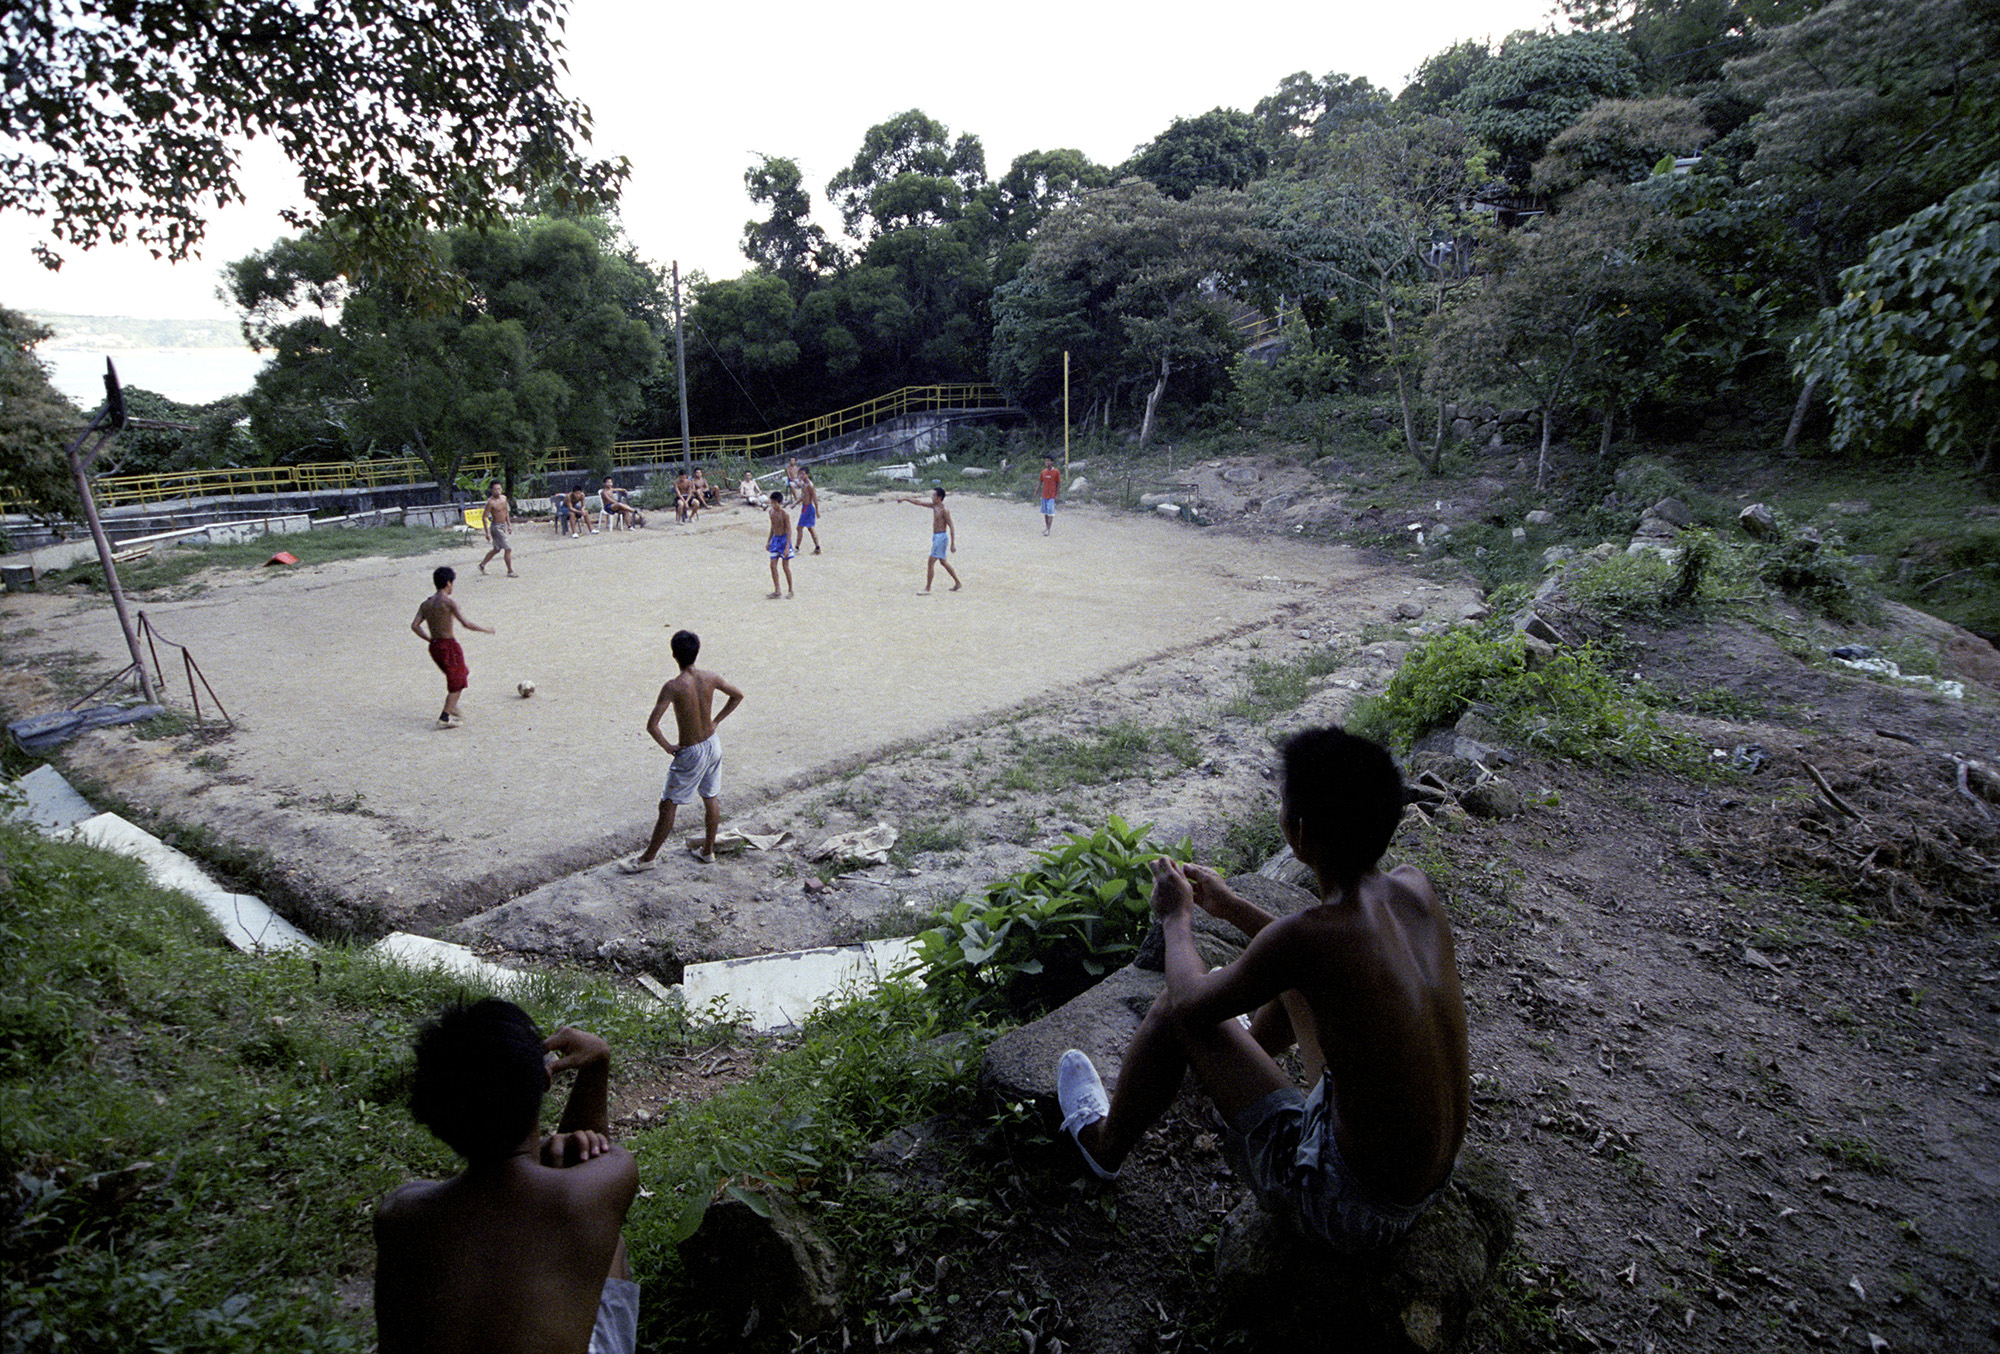 An afternoon game.